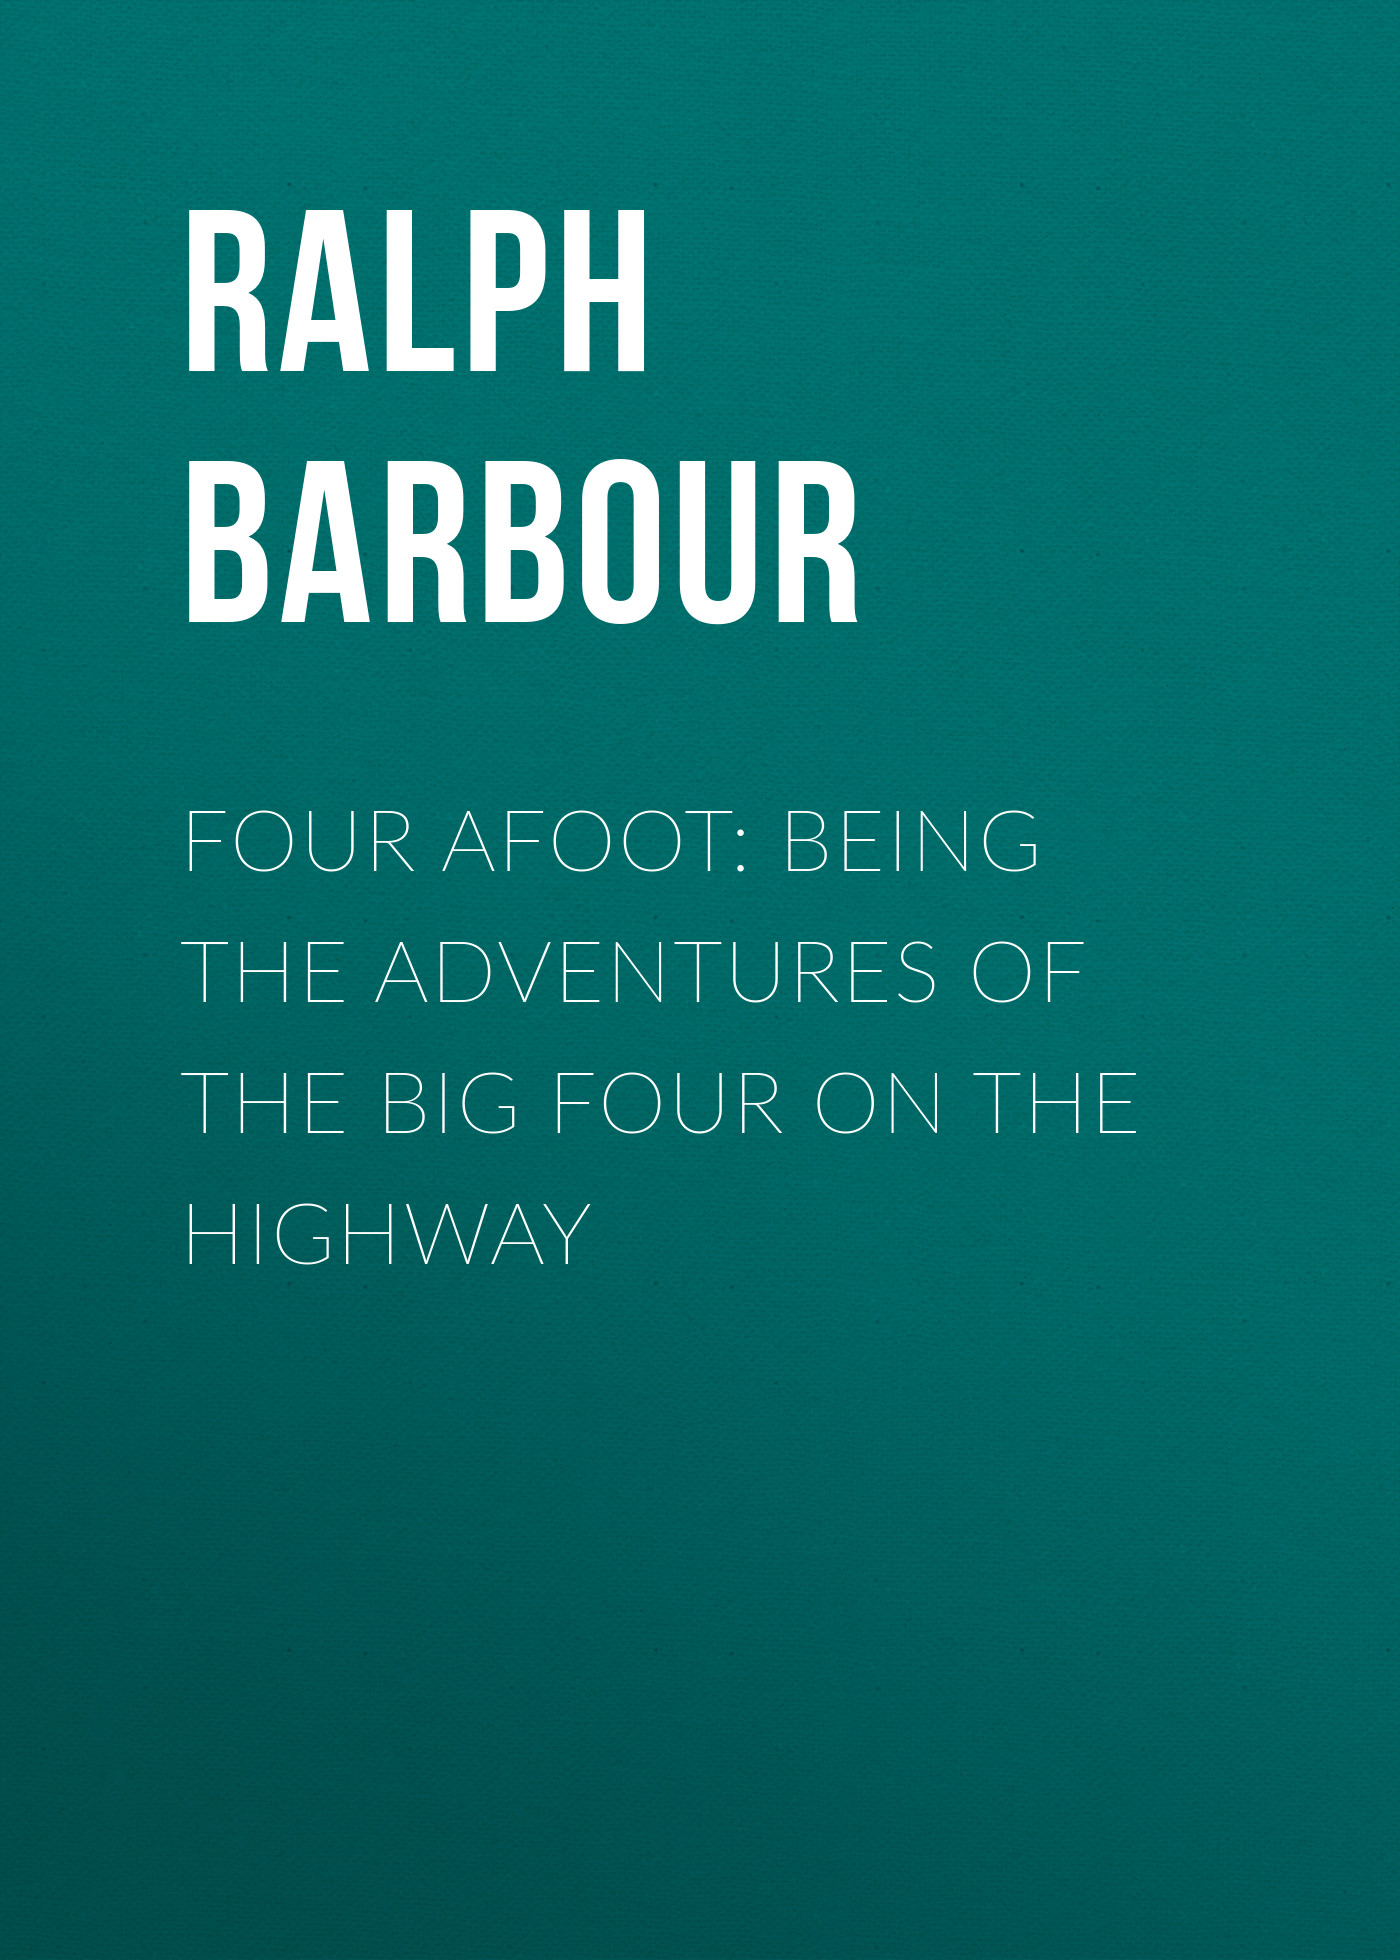 Four Afoot: Being the Adventures of the Big Four on the Highway